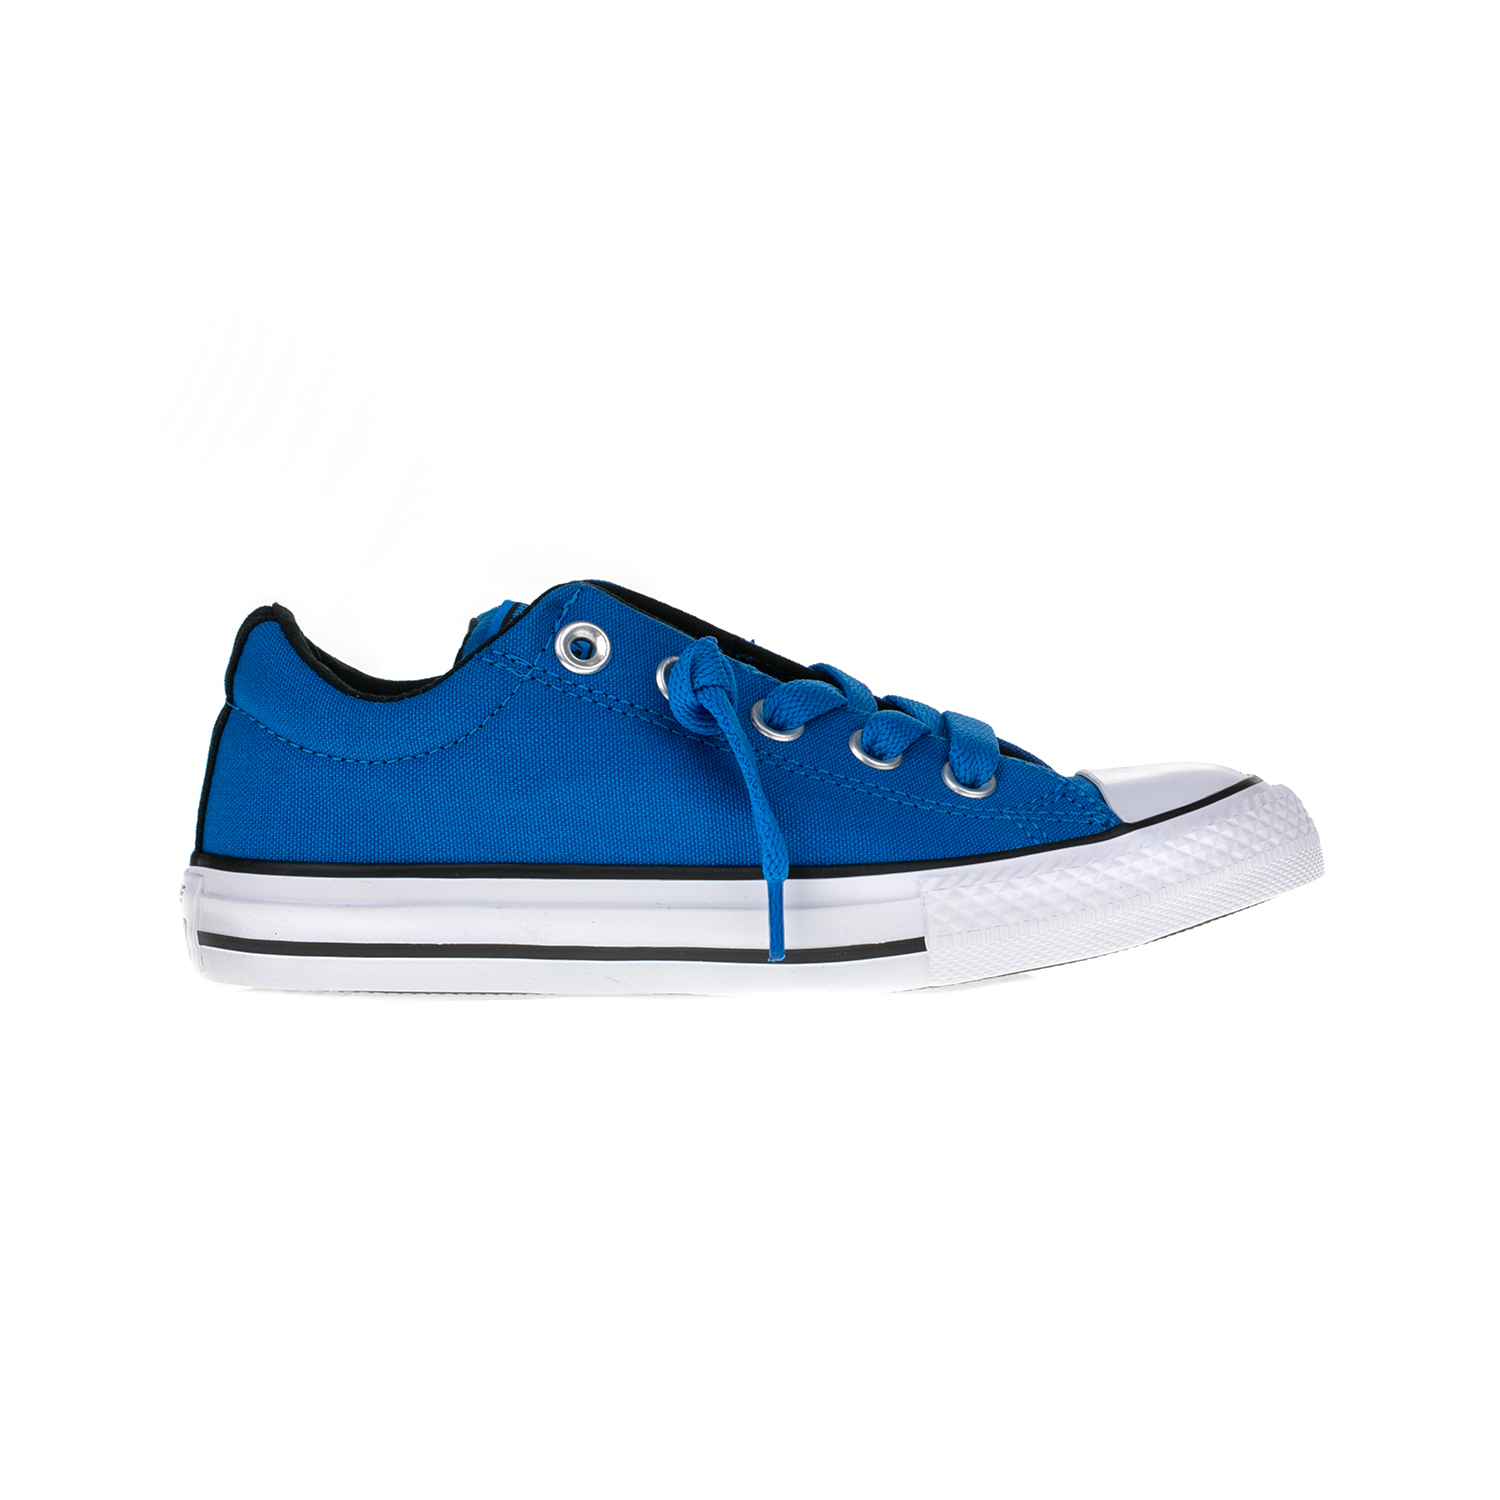 CONVERSE – Παιδικά παπούτσια Chuck Taylor All Star Street S μπλε